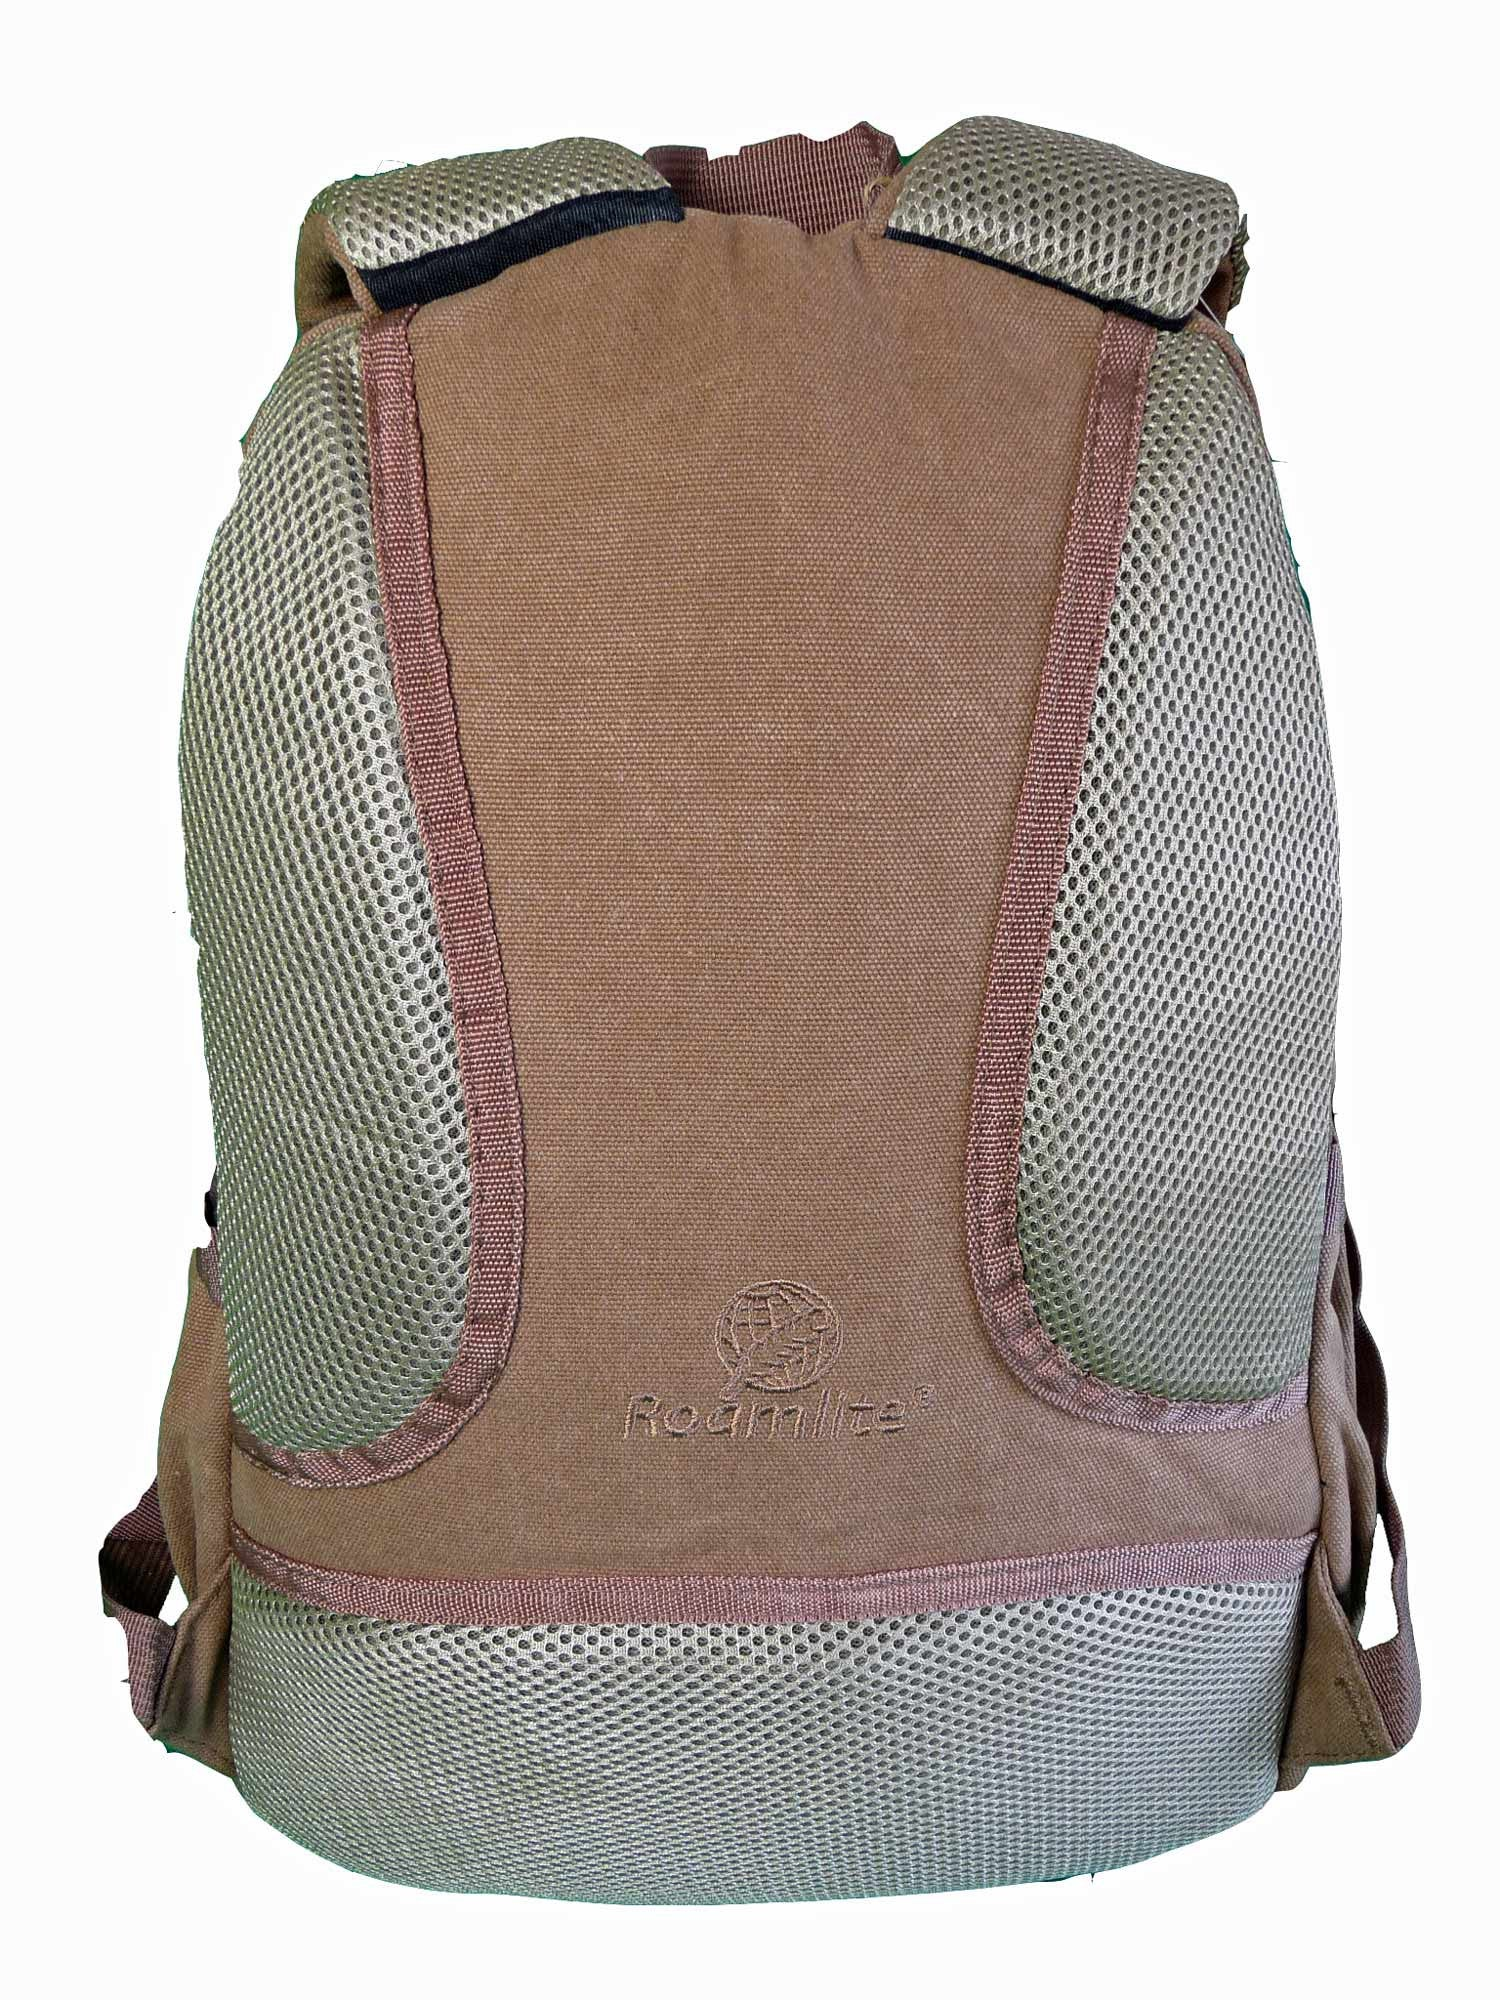 MacBook Air Backpack Rucksack Bag RL25B rear view 2